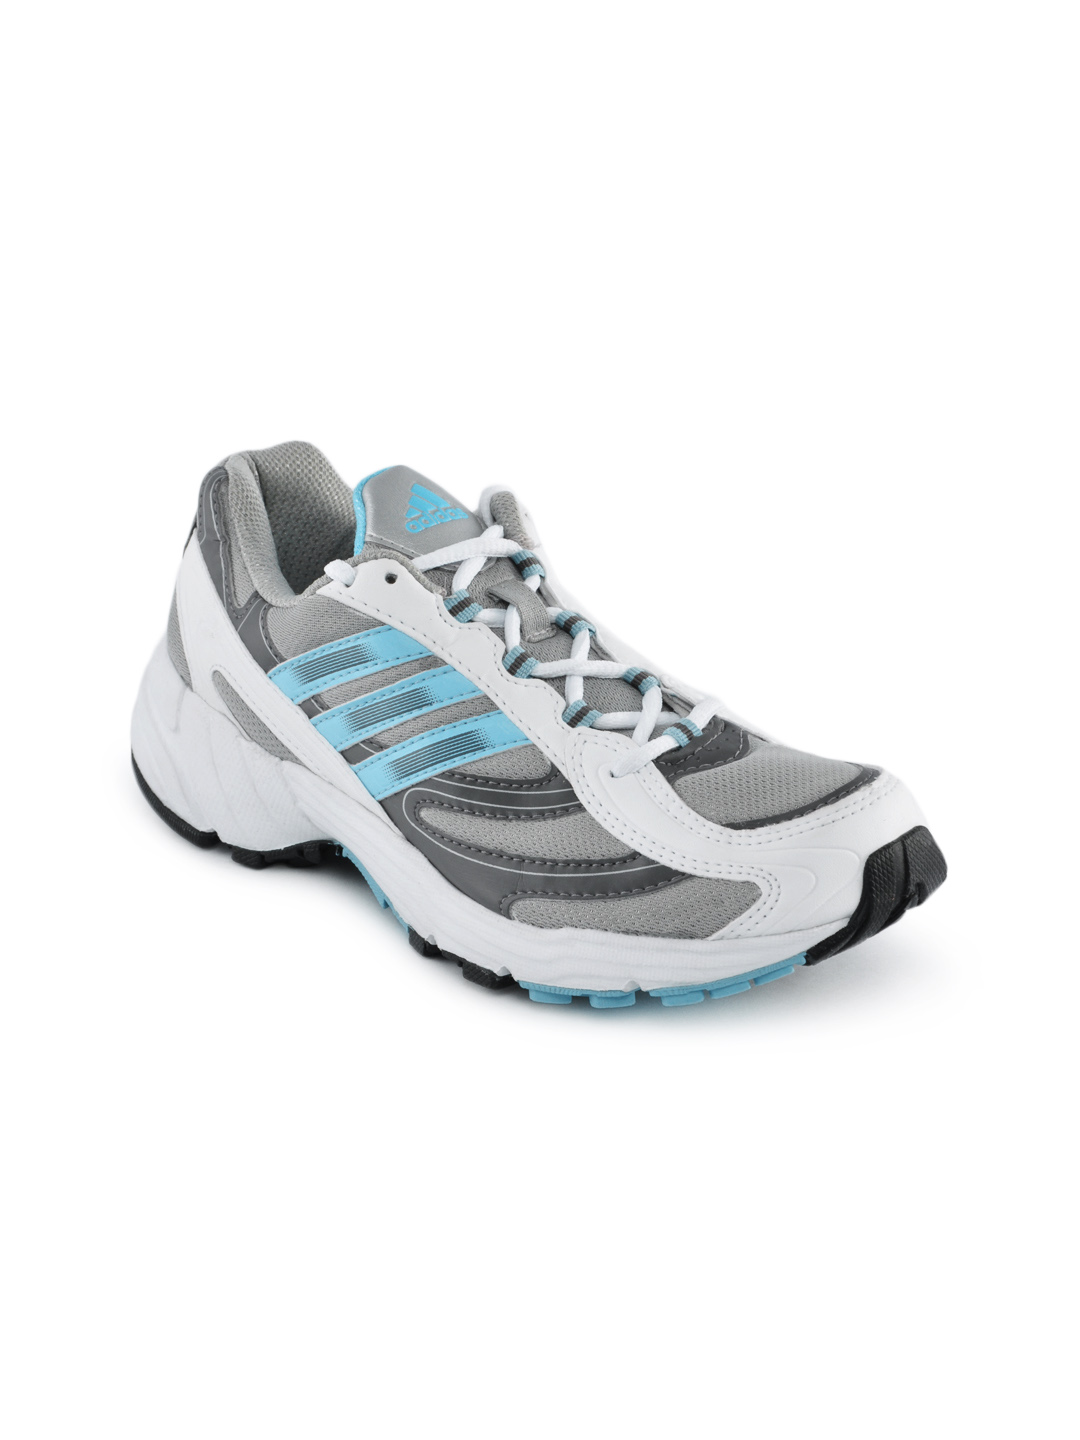 Adidas Women White & Grey Vanquish Sports Shoes